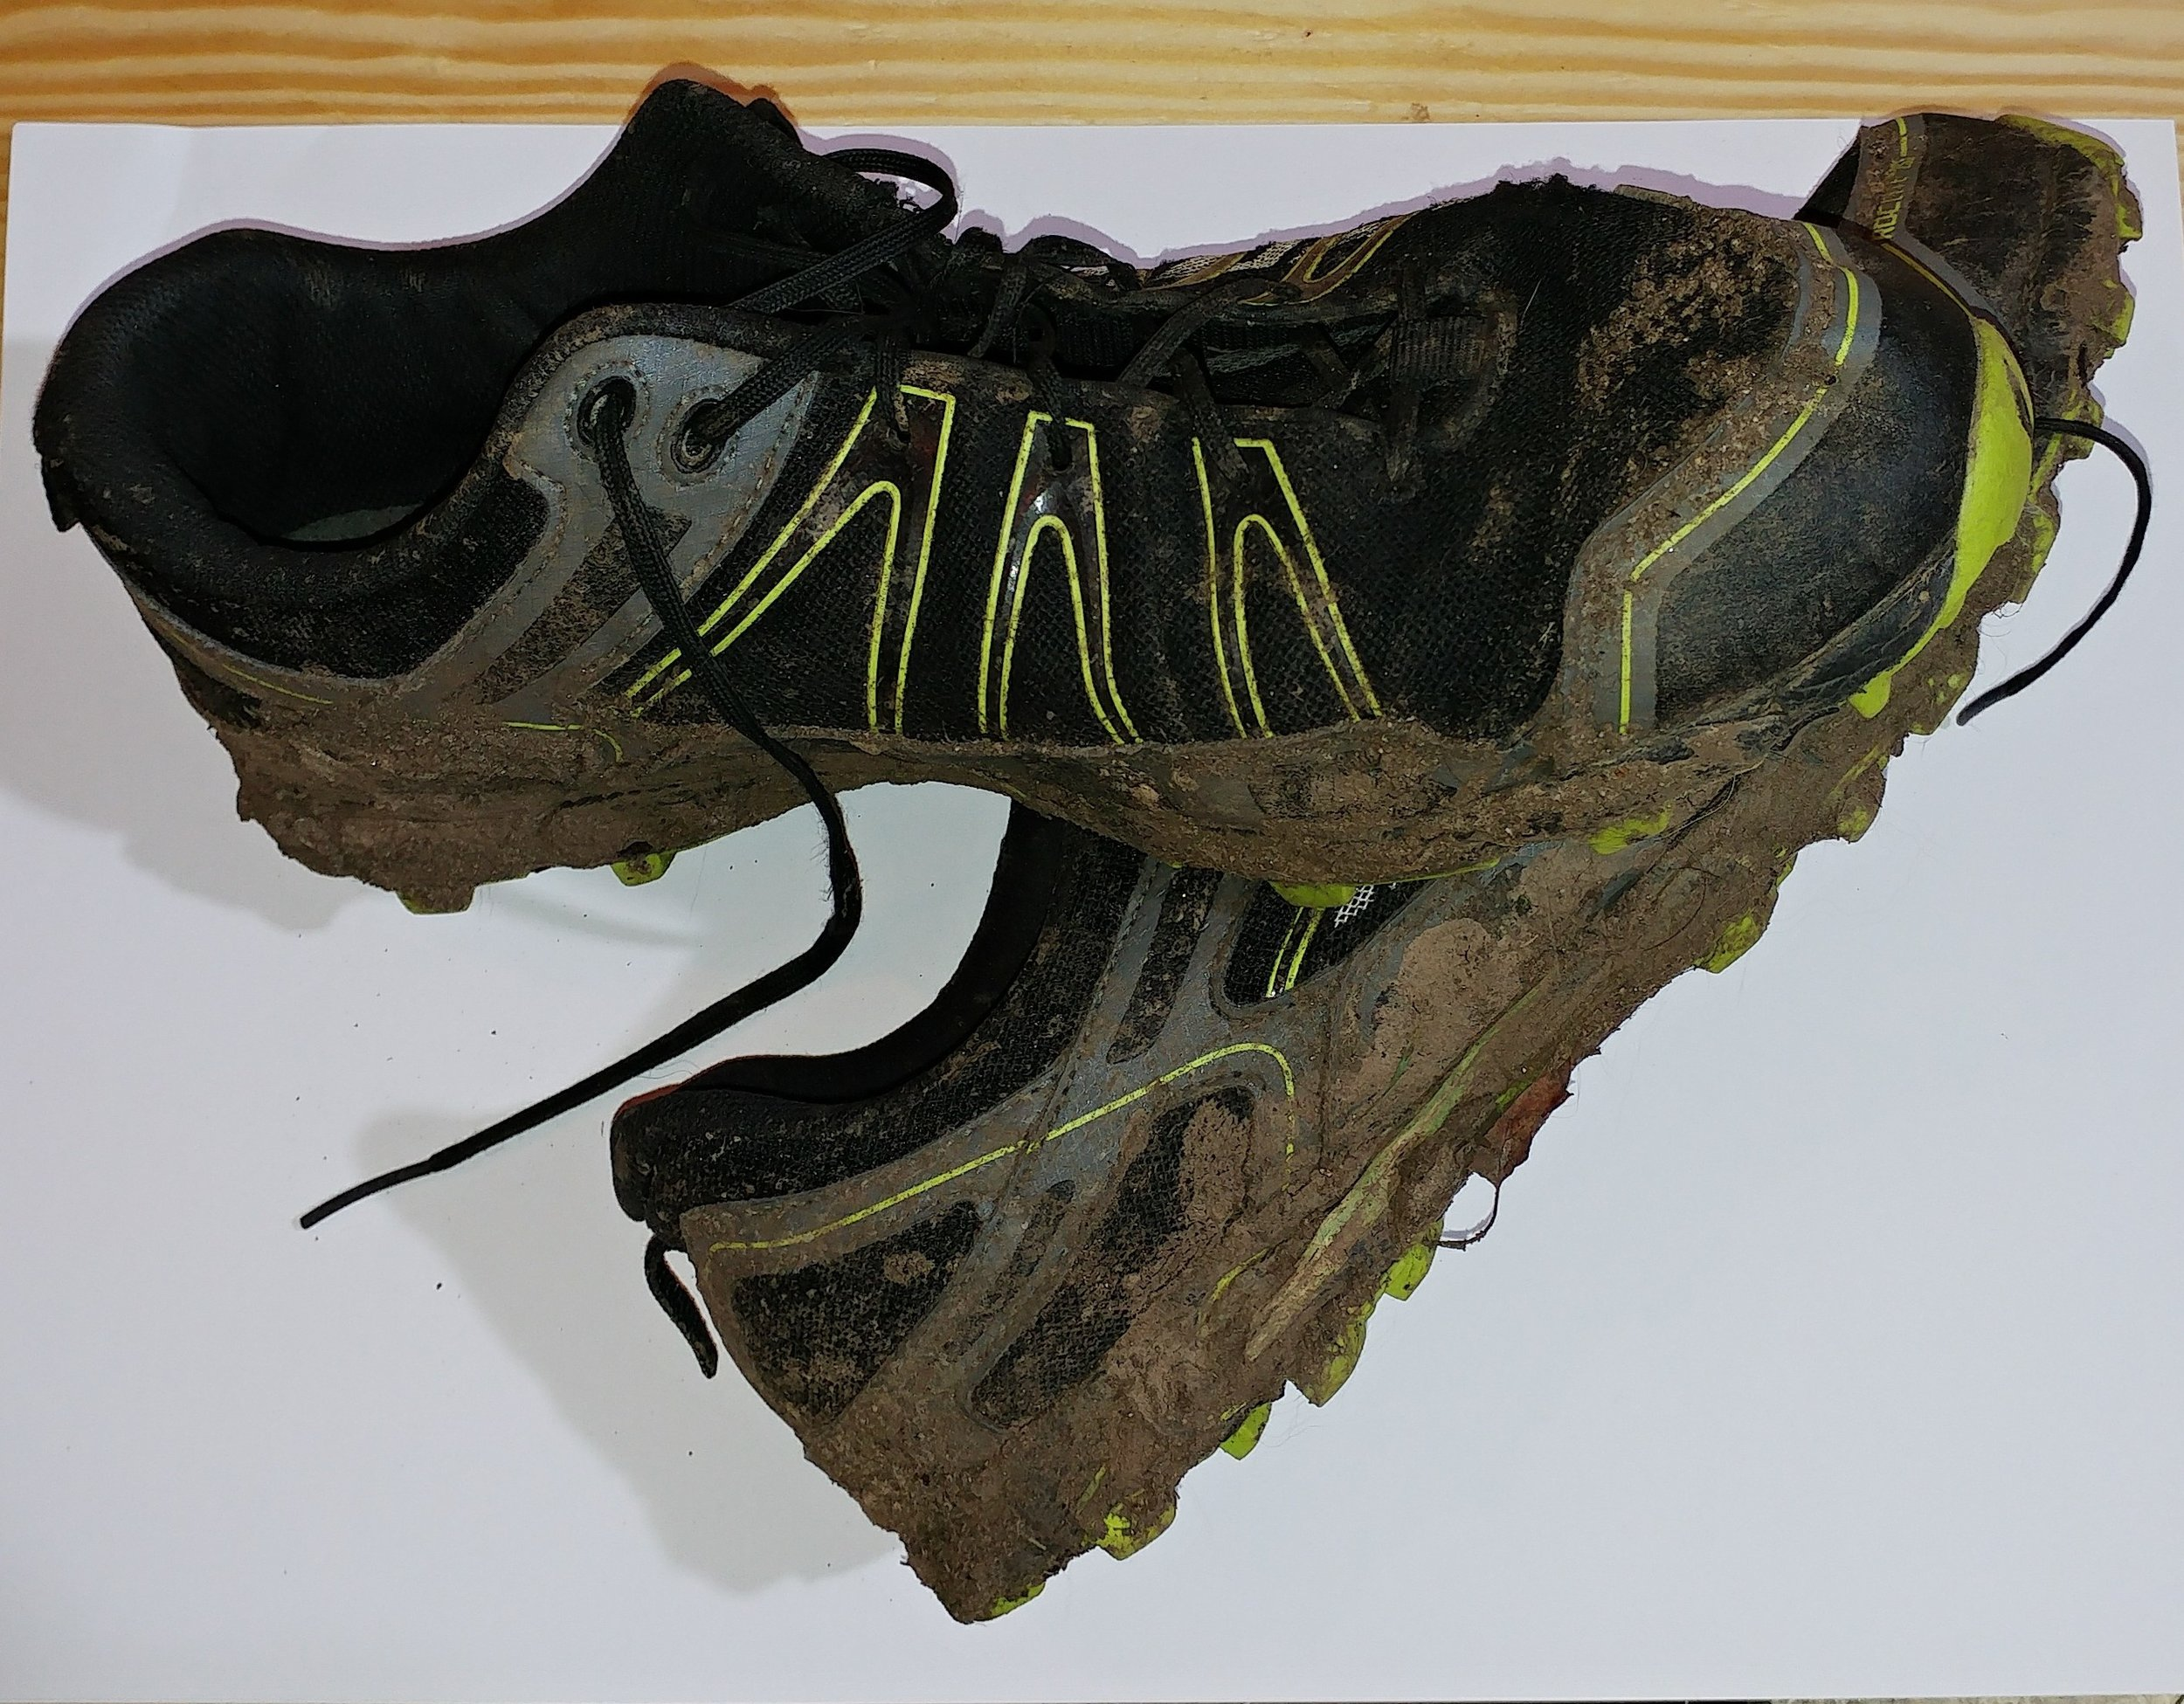 My trusty pair of Inov8 Roclite 295s - well broken in!